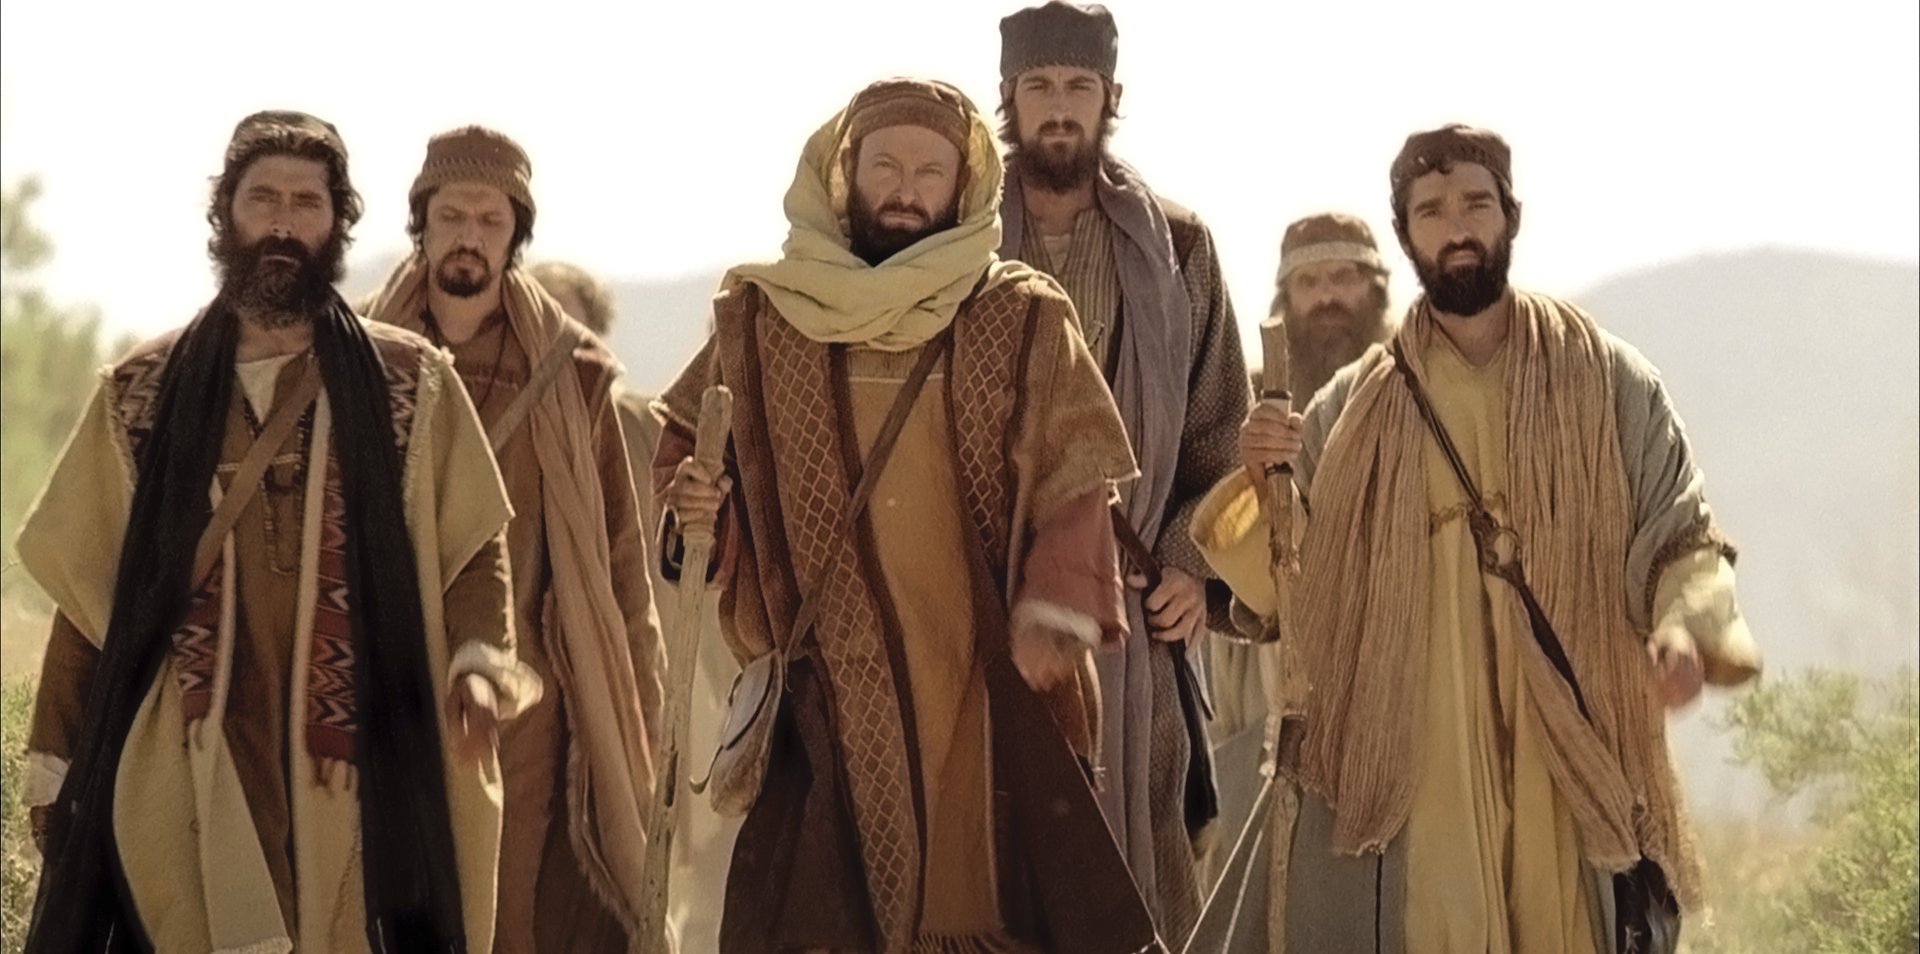 Saul travels with other men on the road to Damascus.